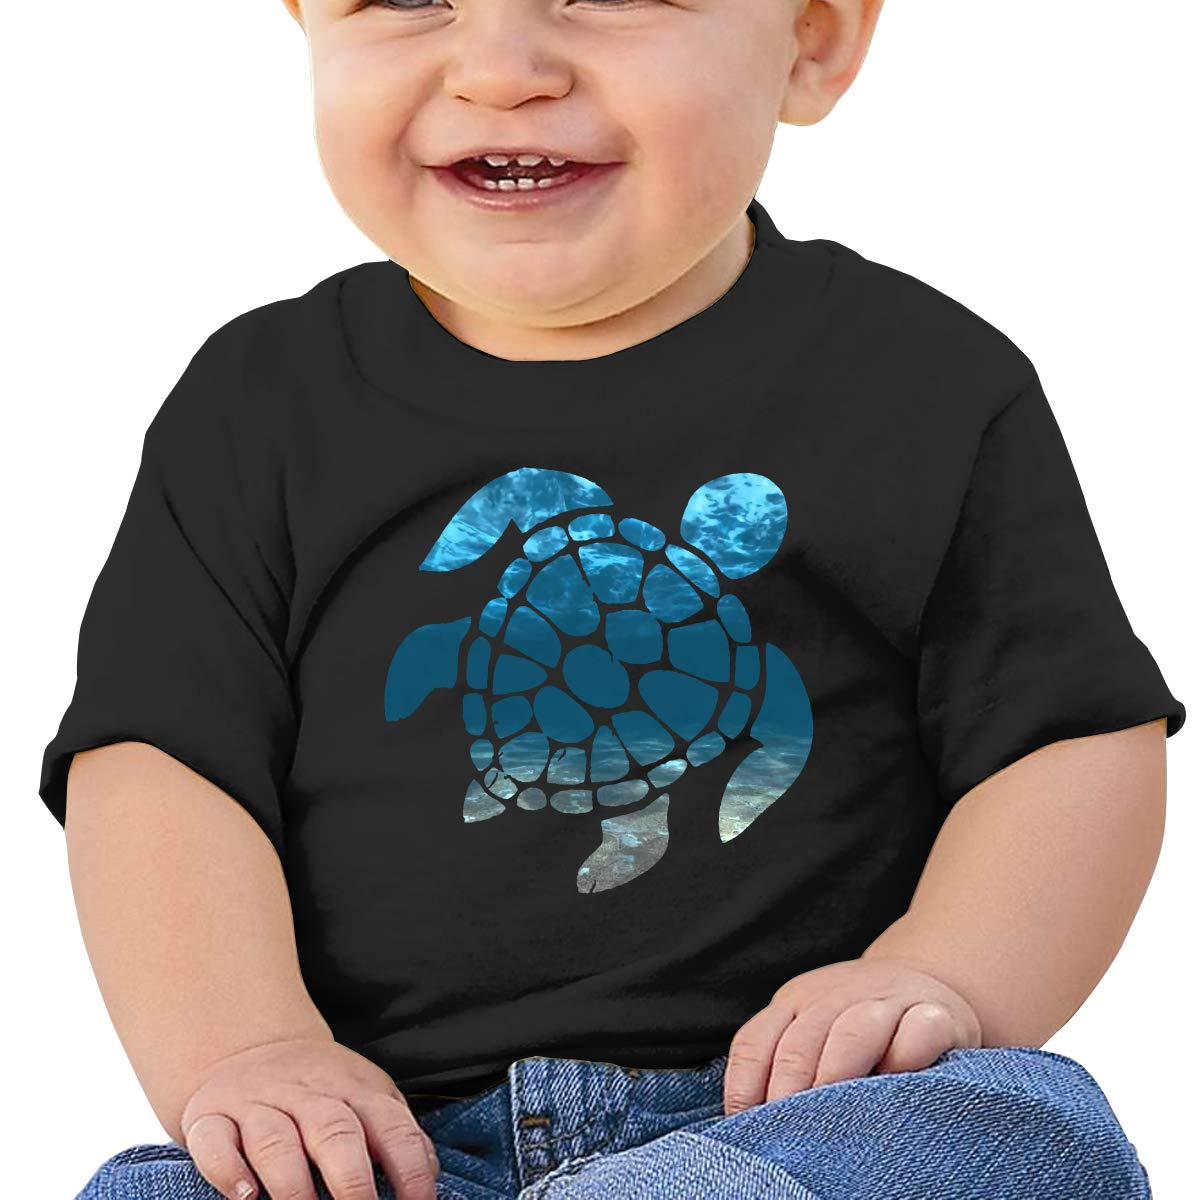 Tie Dye Turtle Sea Toddler Short-Sleeve Tee for Boy Girl Infant Kids T-Shirt On Newborn 6-18 Months